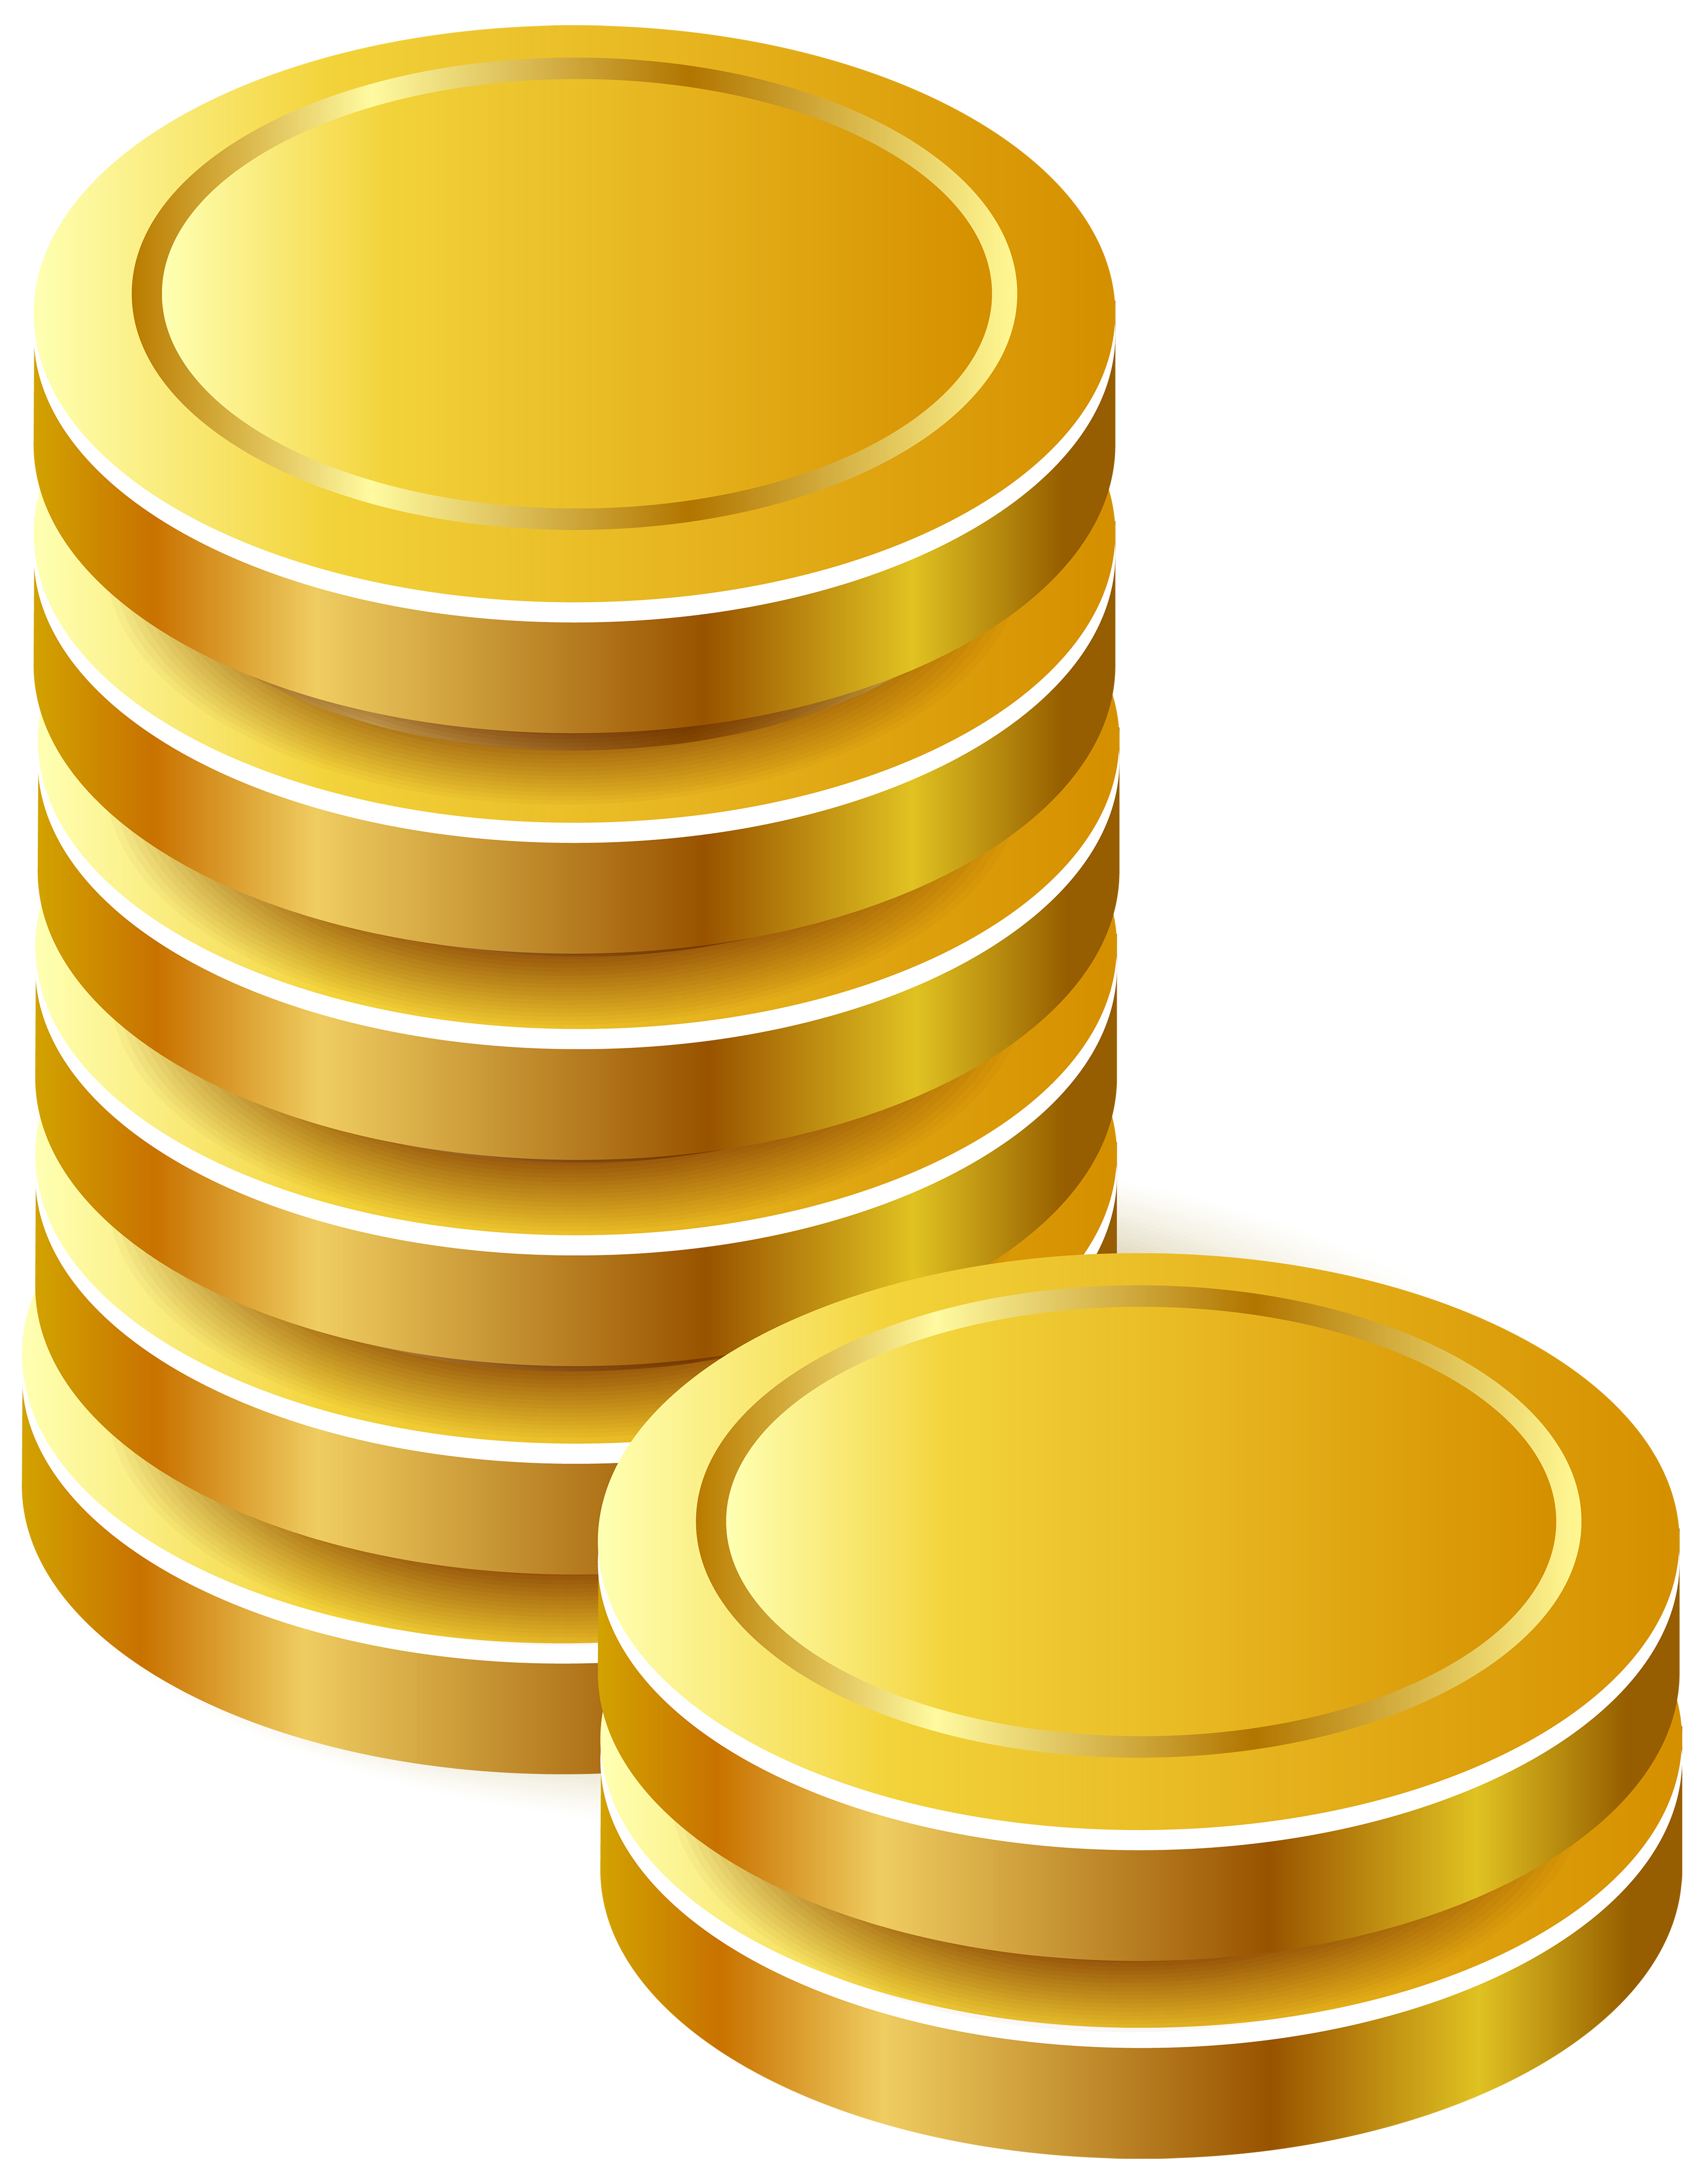 Coins png best web. Coin clipart gold coin graphic royalty free library